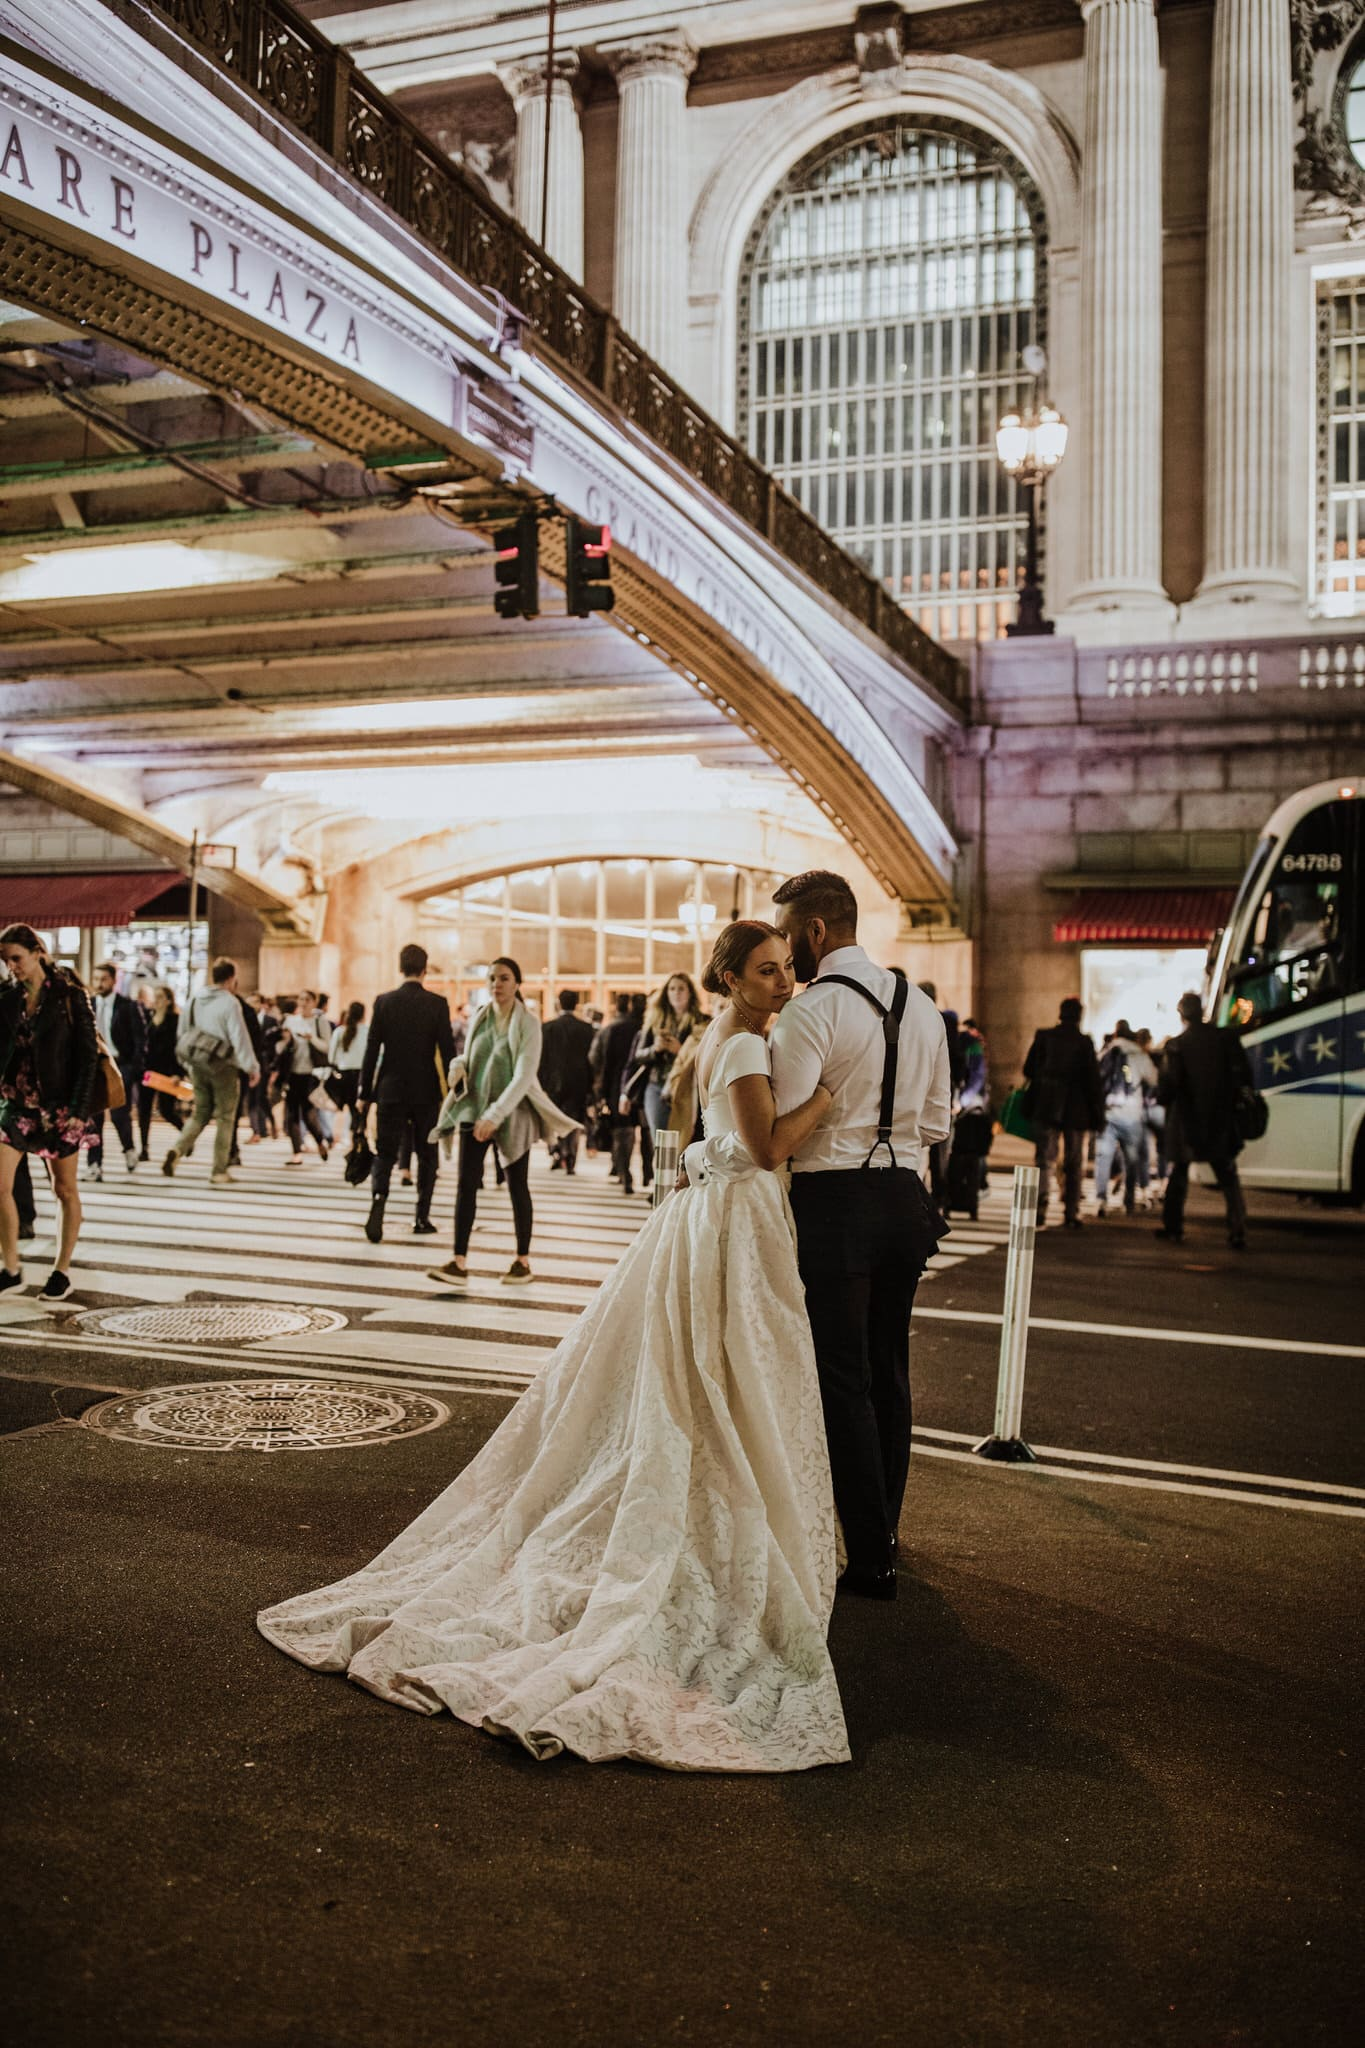 The bride and groom embrace in front of Central Station, New York. Wedding Photographer Brent Calis.